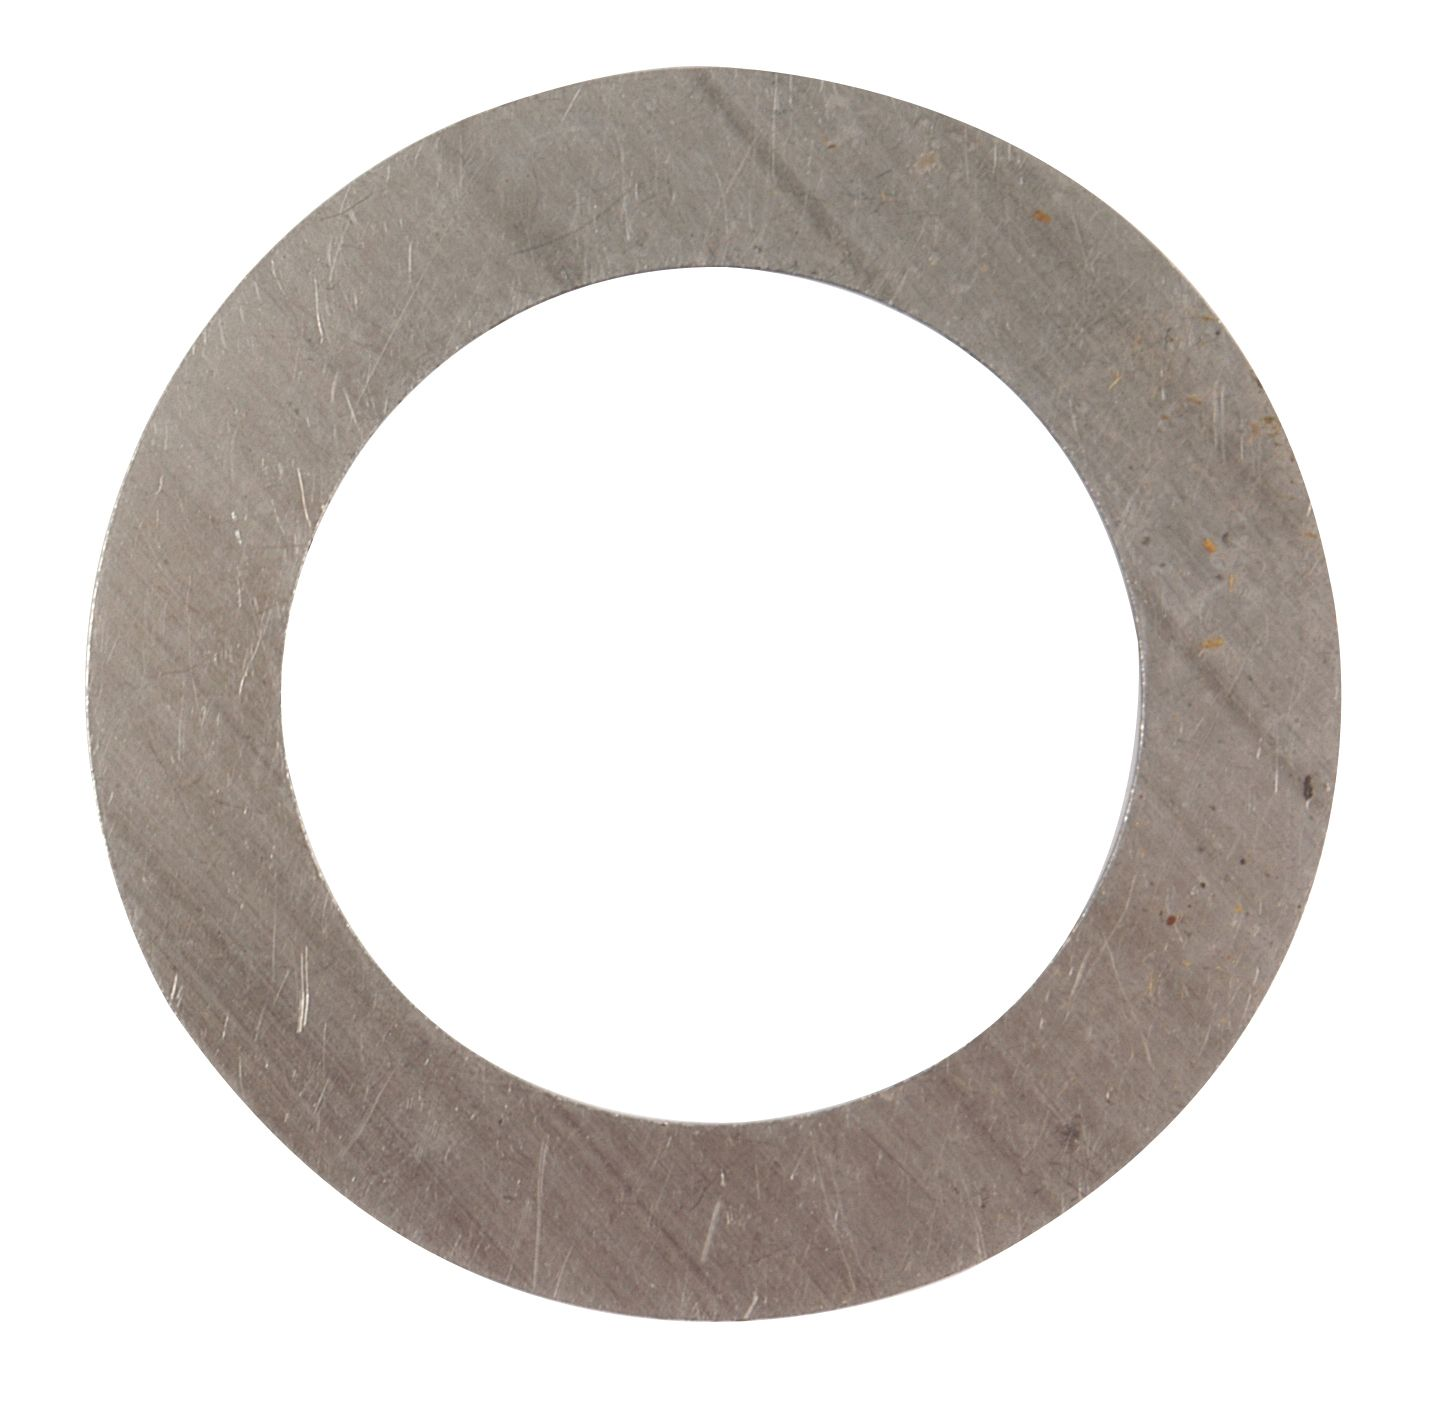 COUNTY THRUST WASHER 66296